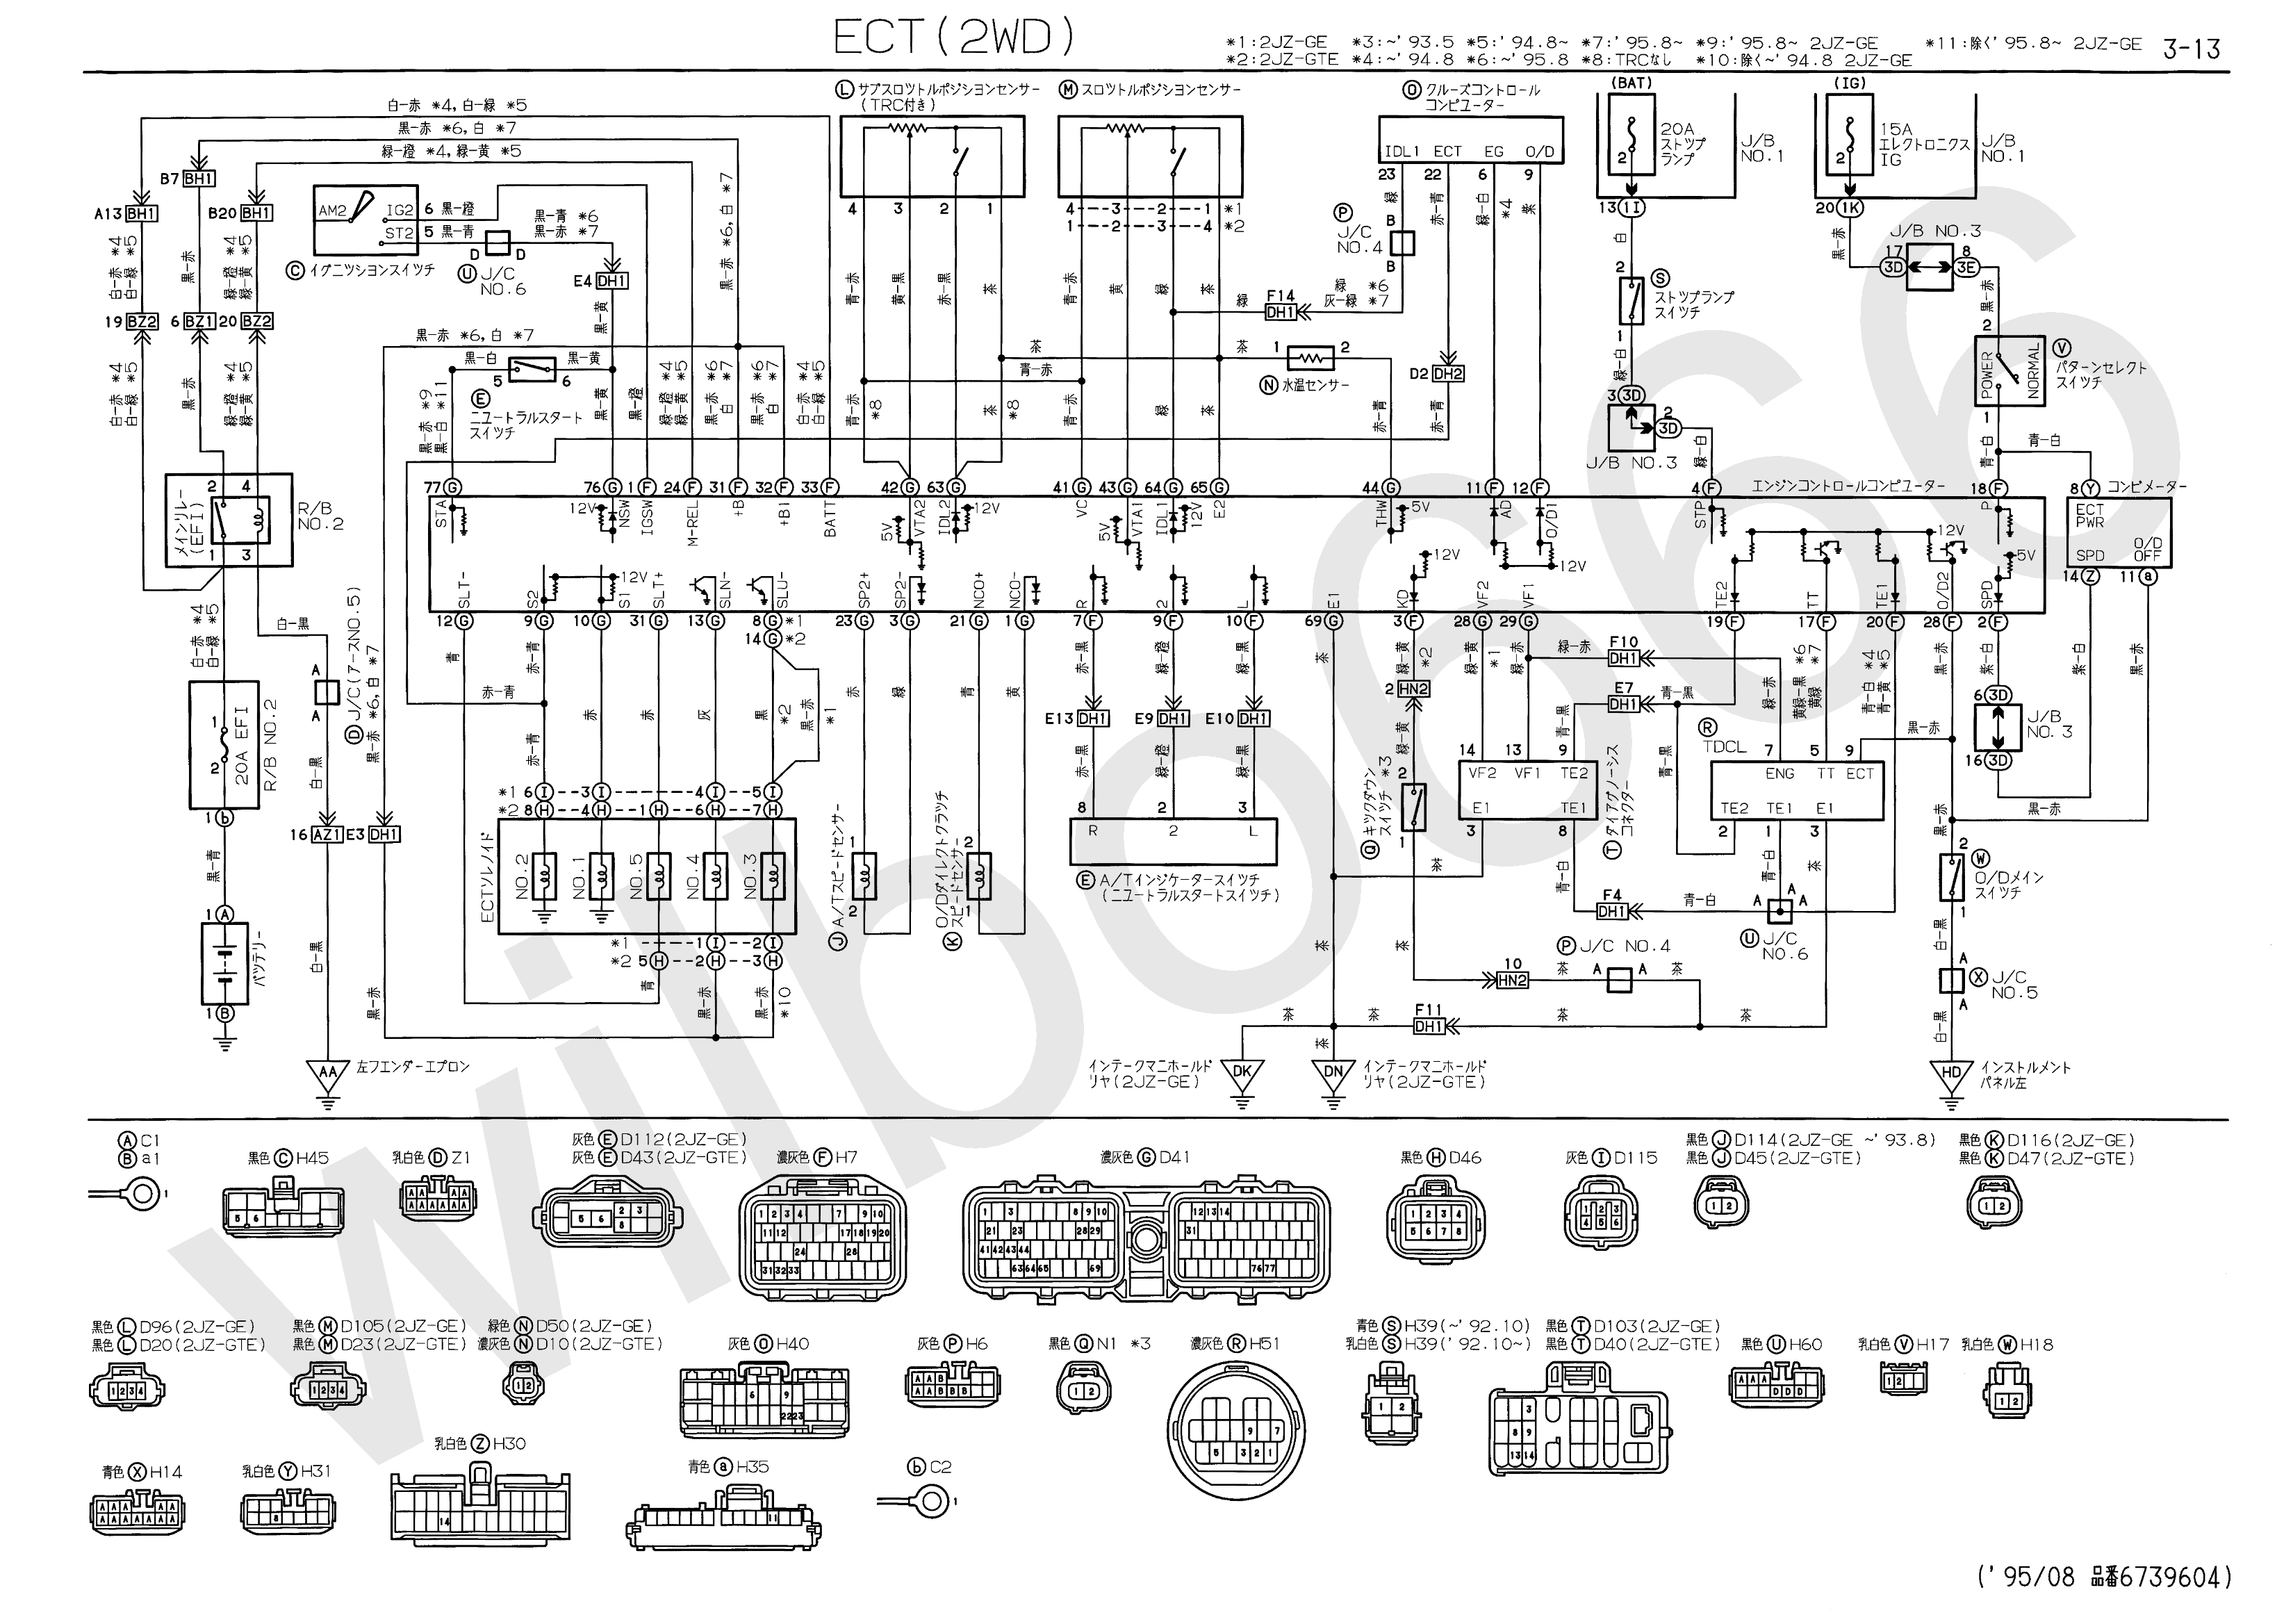 Toyota Lexus Wiring Diagrams Online Manuual Of Diagram Ls400 Ecu Gs300 Todays Rh 8 5 1813weddingbarn Com Wire Colors